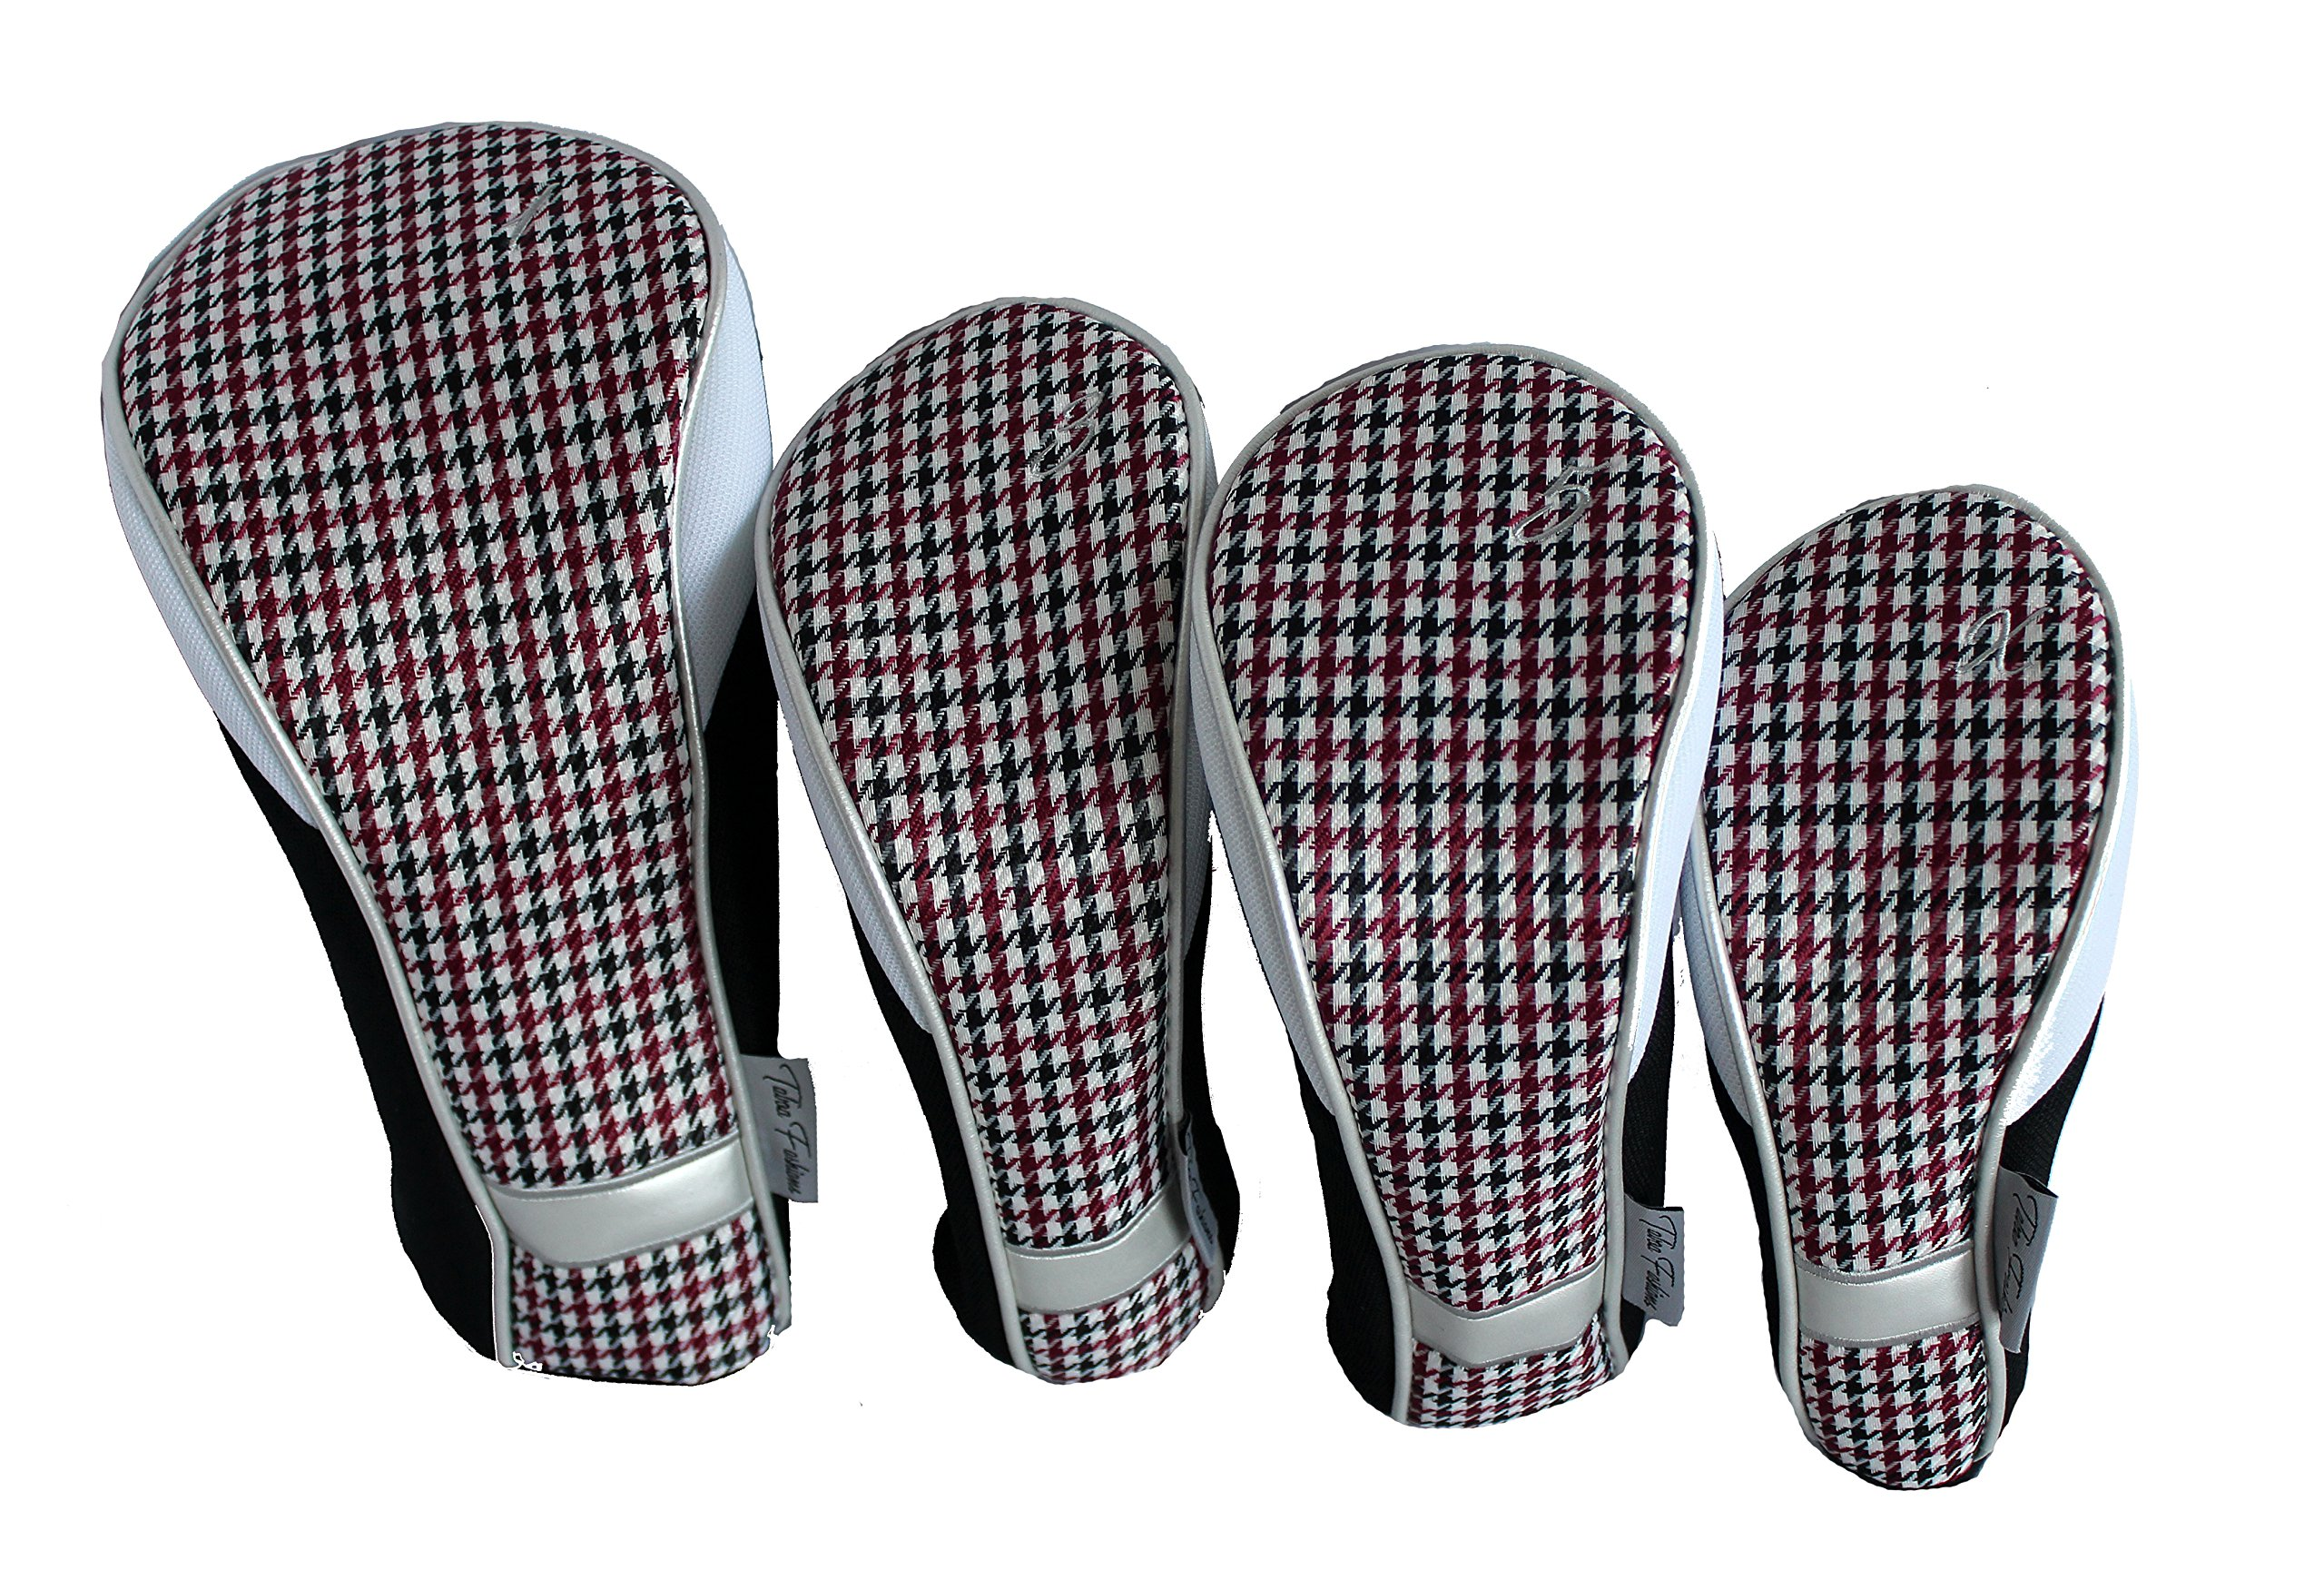 Taboo Fashions 4-Pack Designer Golf Club Cover Head Cover Set (Checkmate)